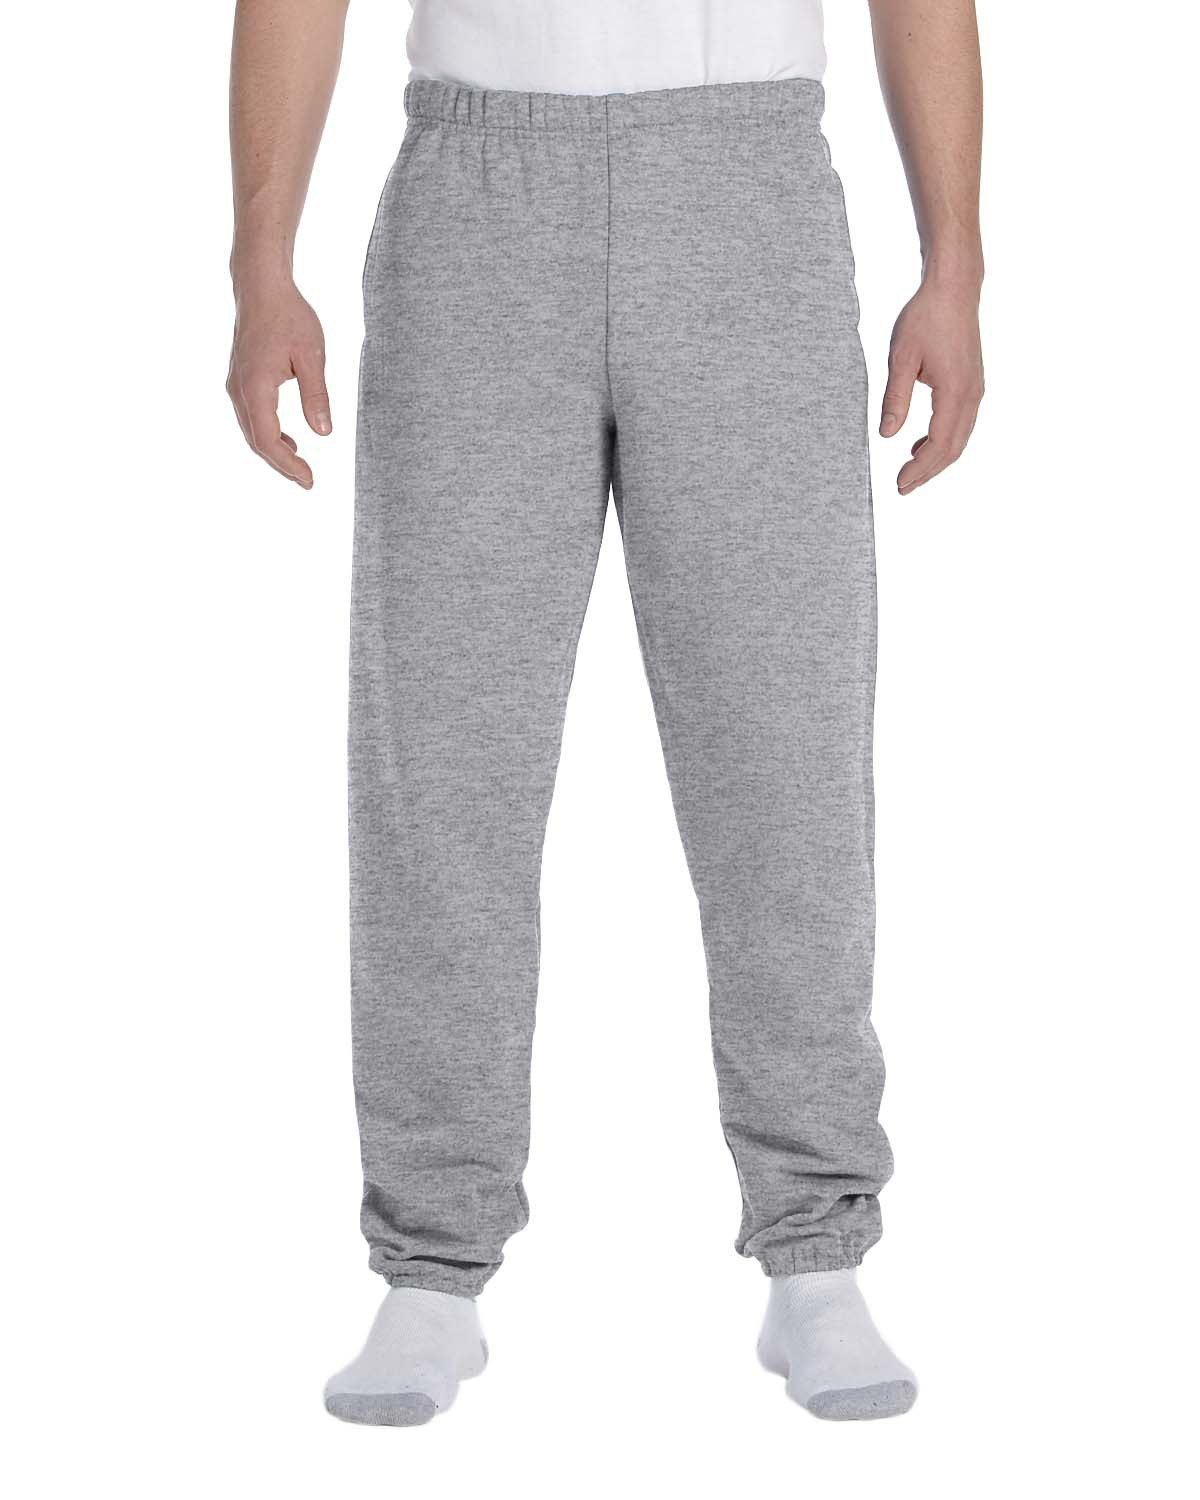 Jerzees 4850P 9.5 oz. Super Sweats50/50 Fleece Sweatpants